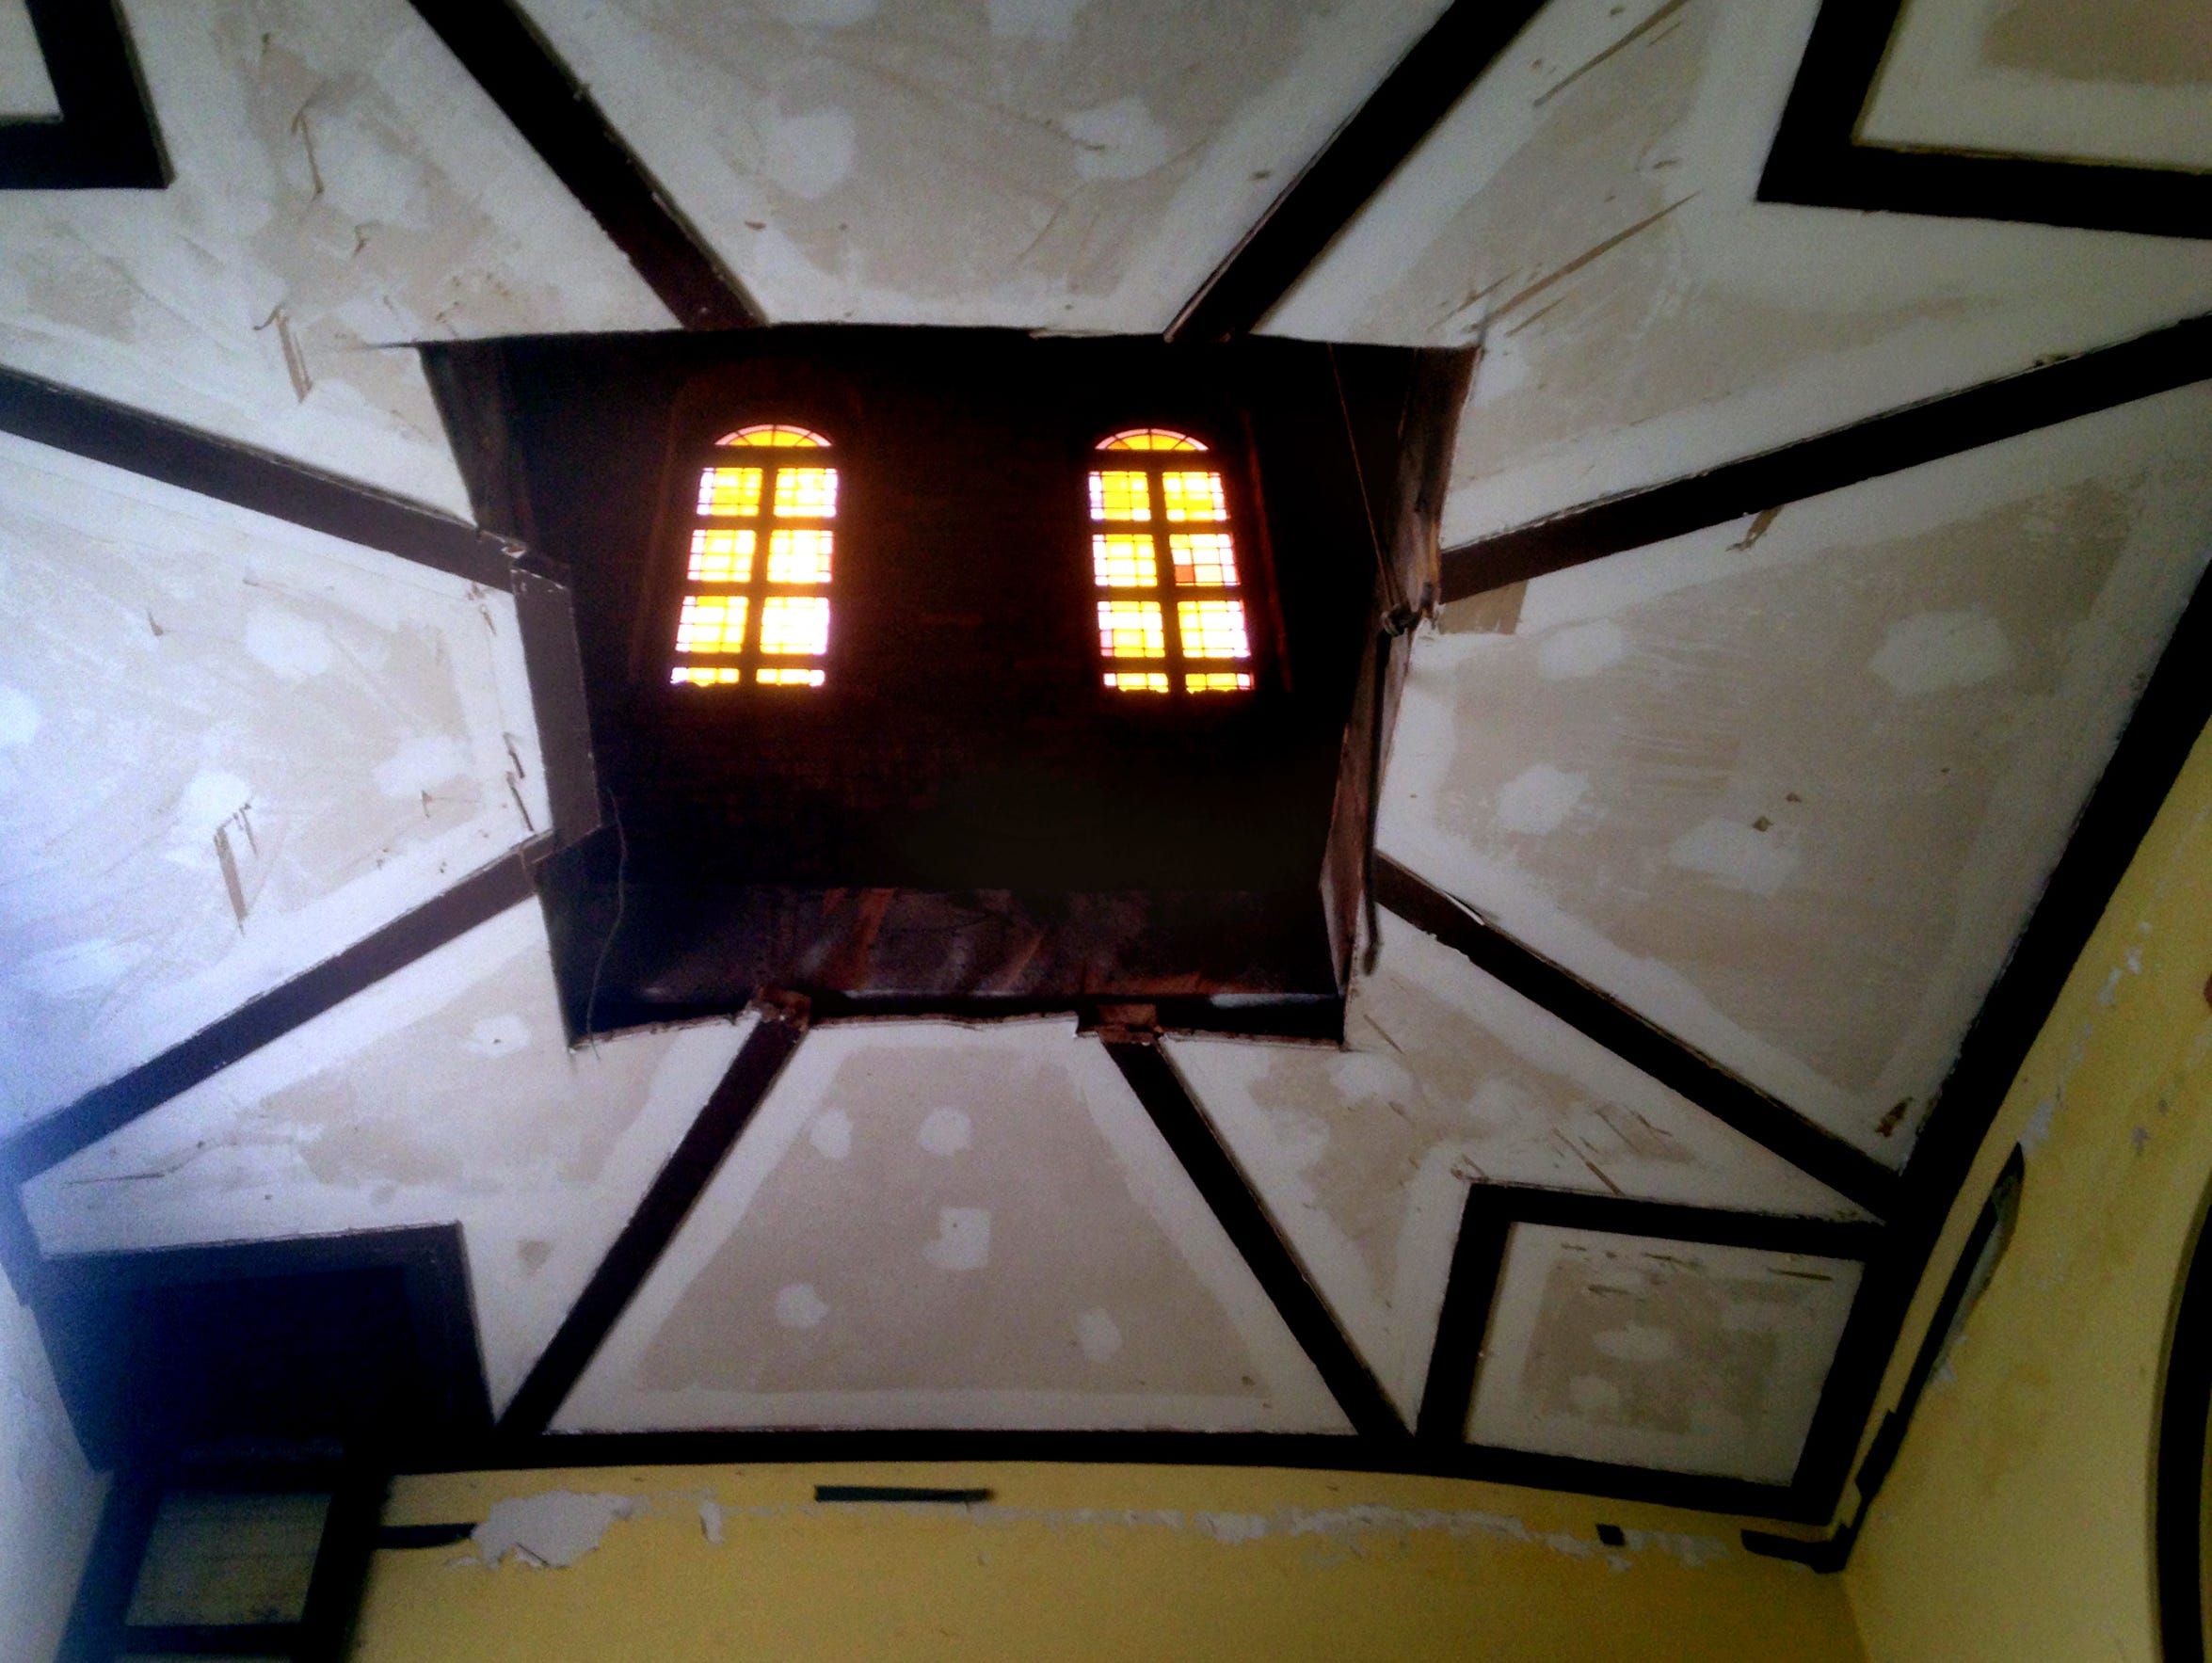 The hole in the ceiling leads into the bell tower of